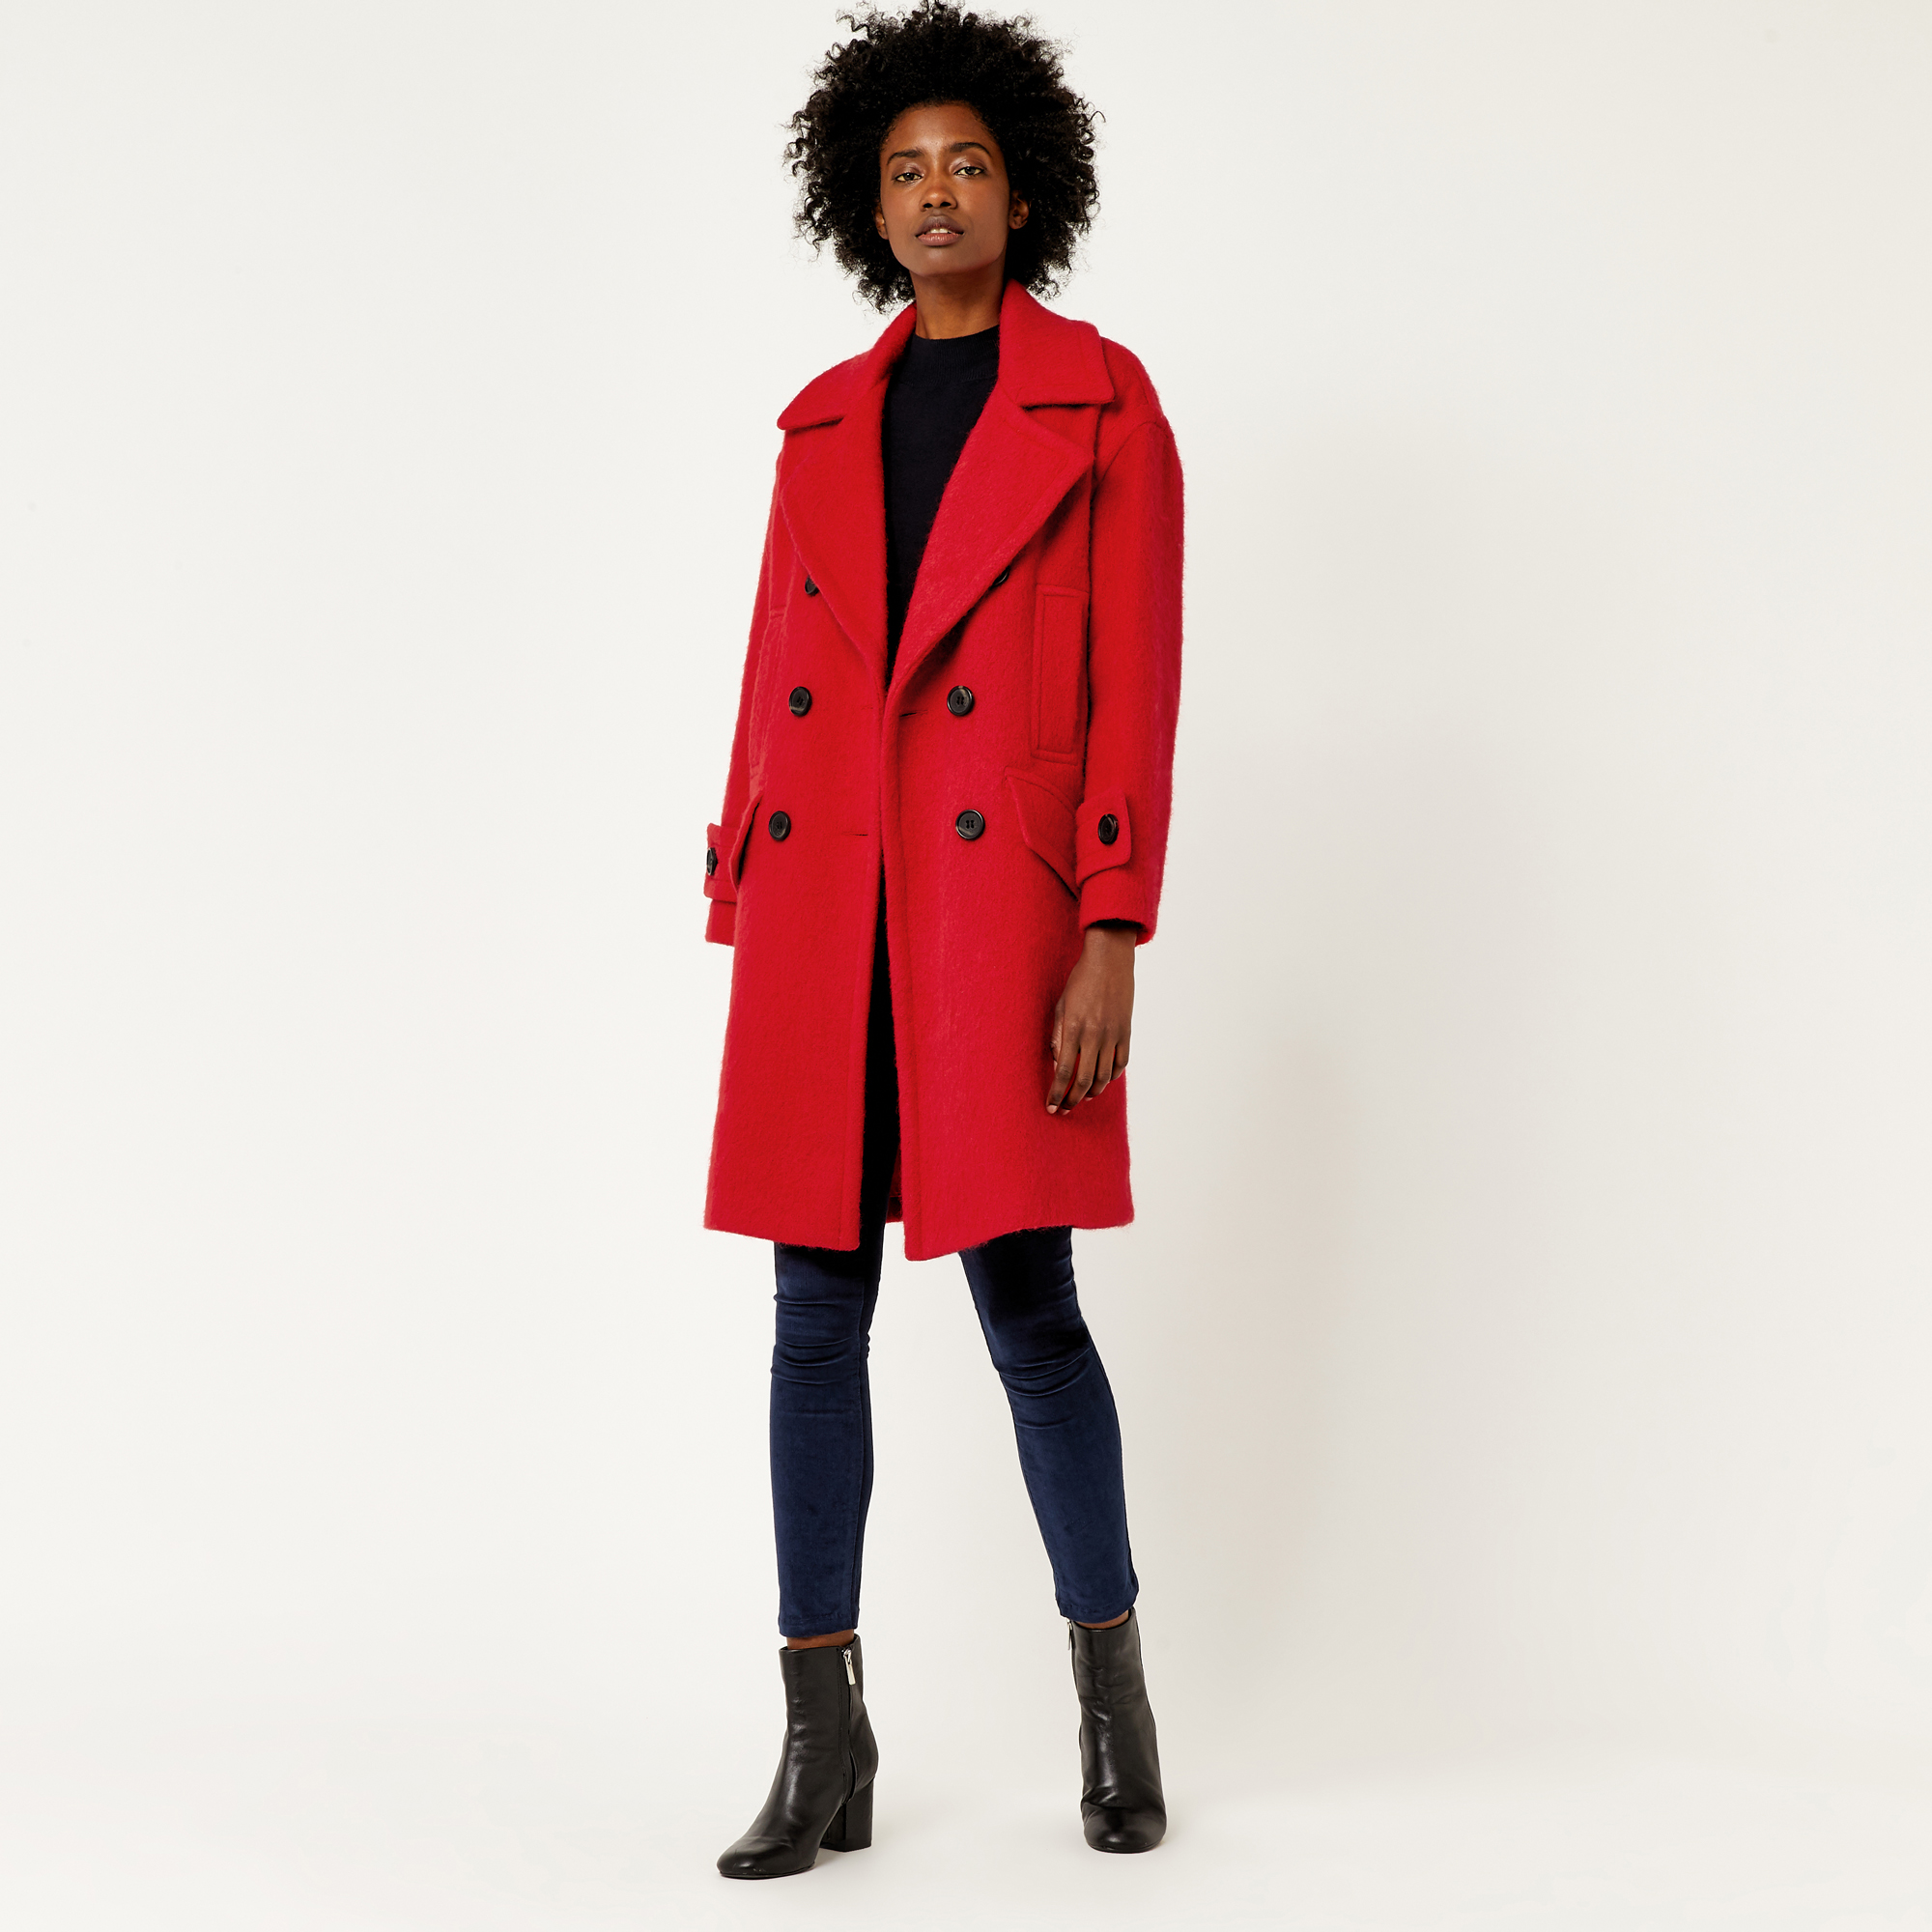 warehouse, red coat bright red 1 ... DWOLREB